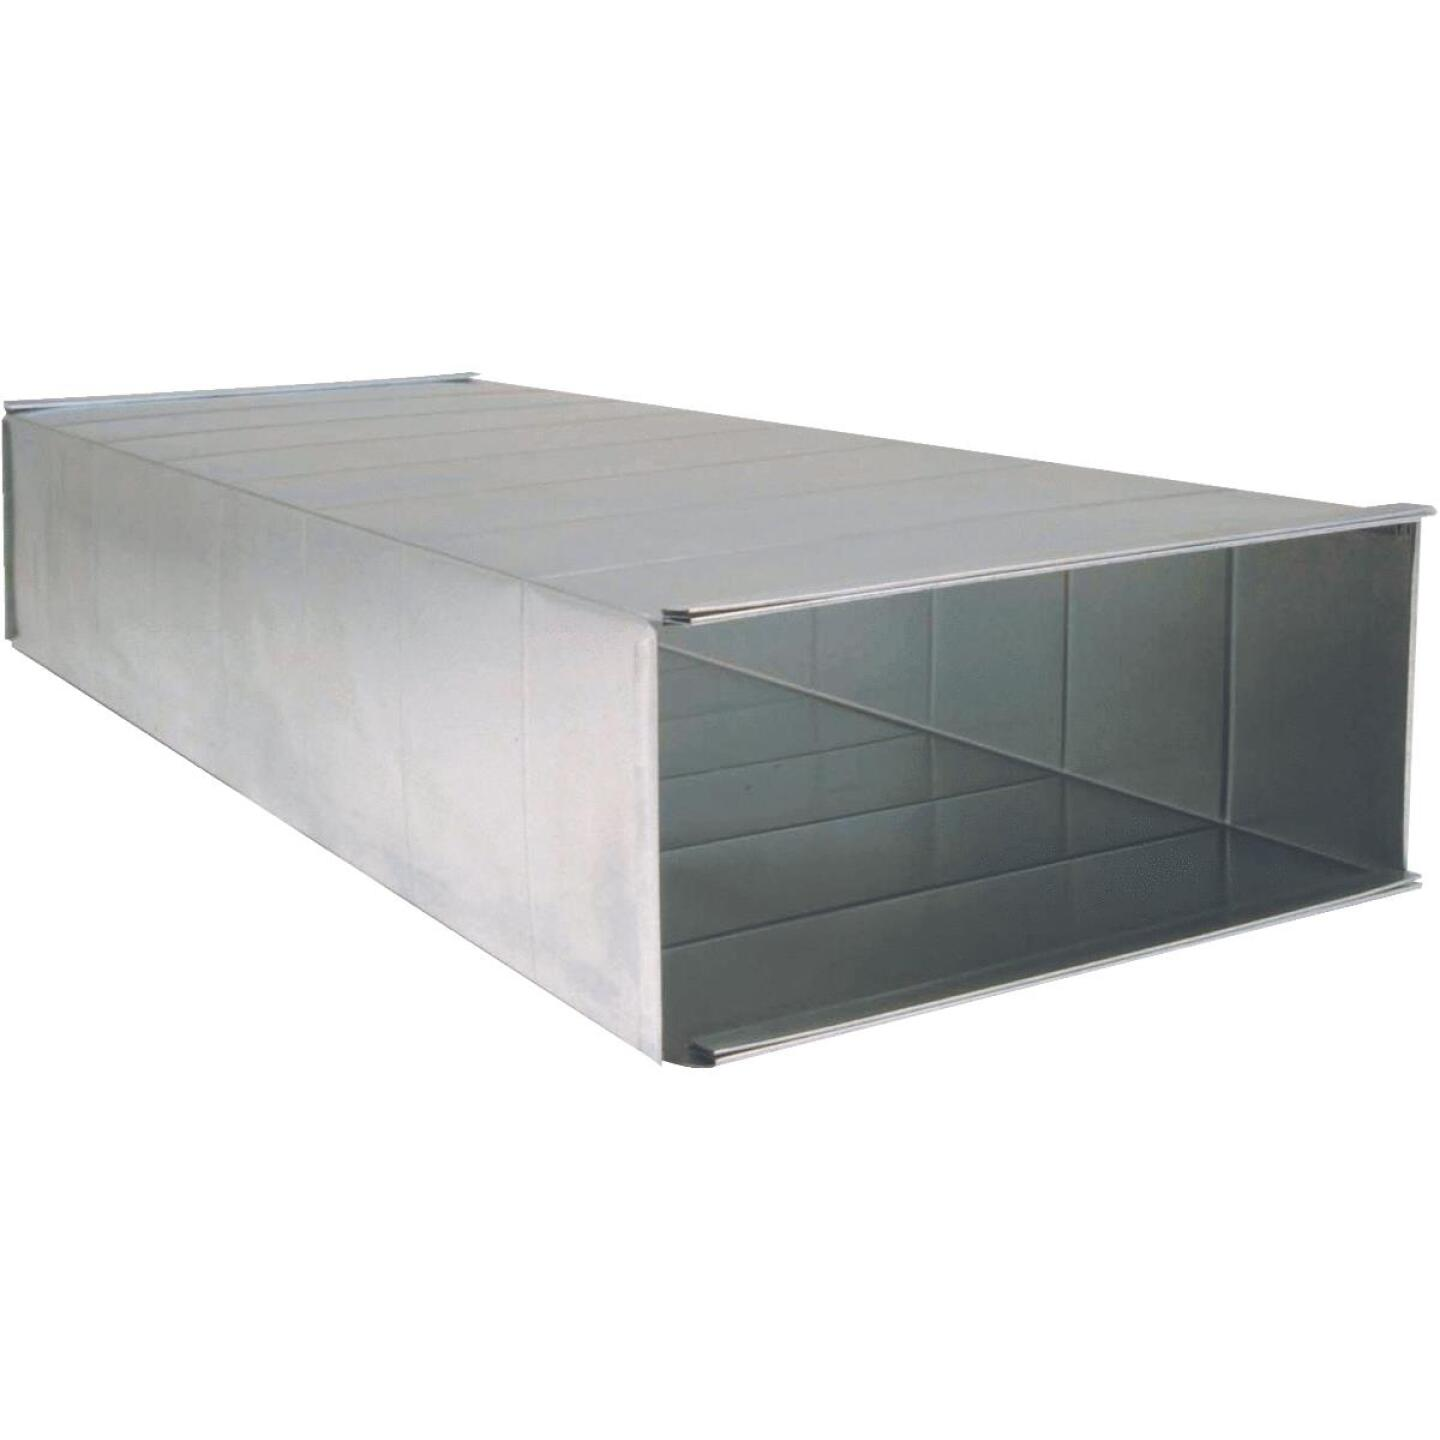 Imperial 30 Ga. 8 In. x 16 In. x 48 In. Galvanized Trunk Duct Image 1